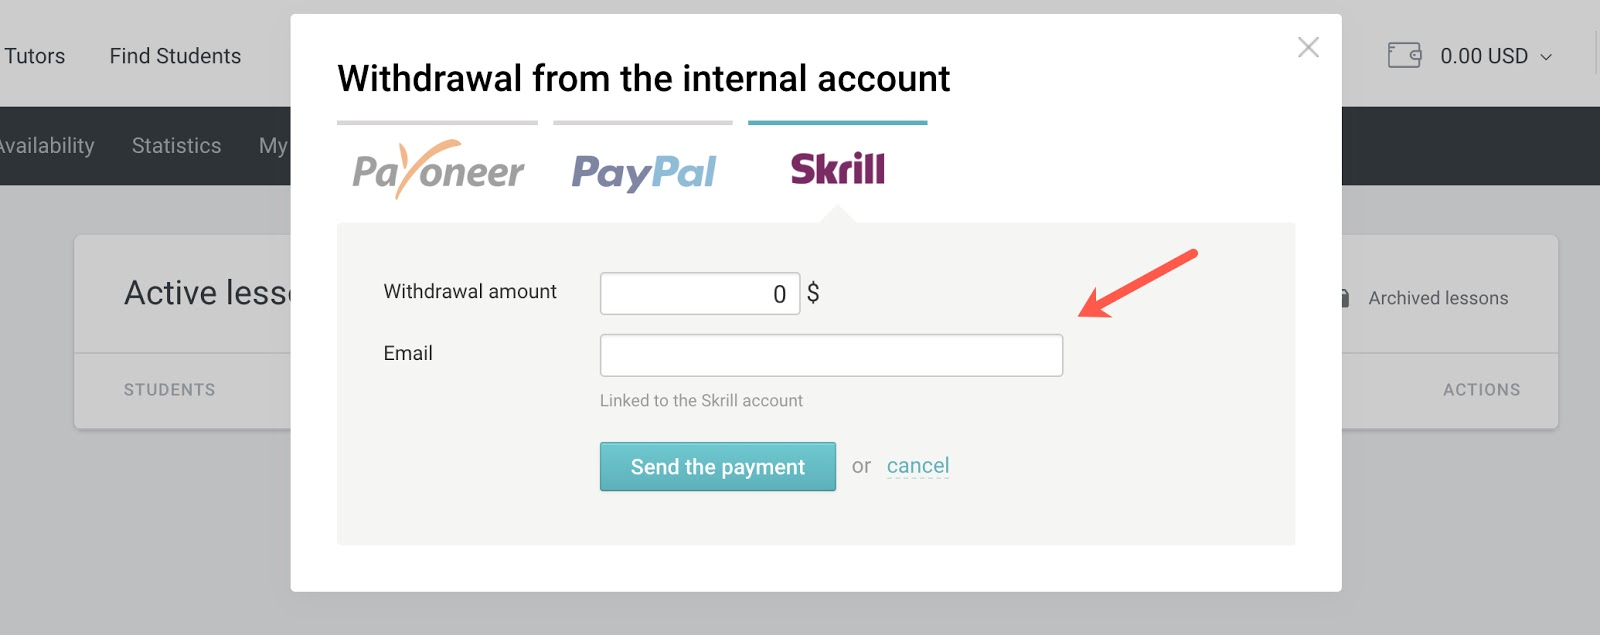 Your Skrill associated email should be entered here